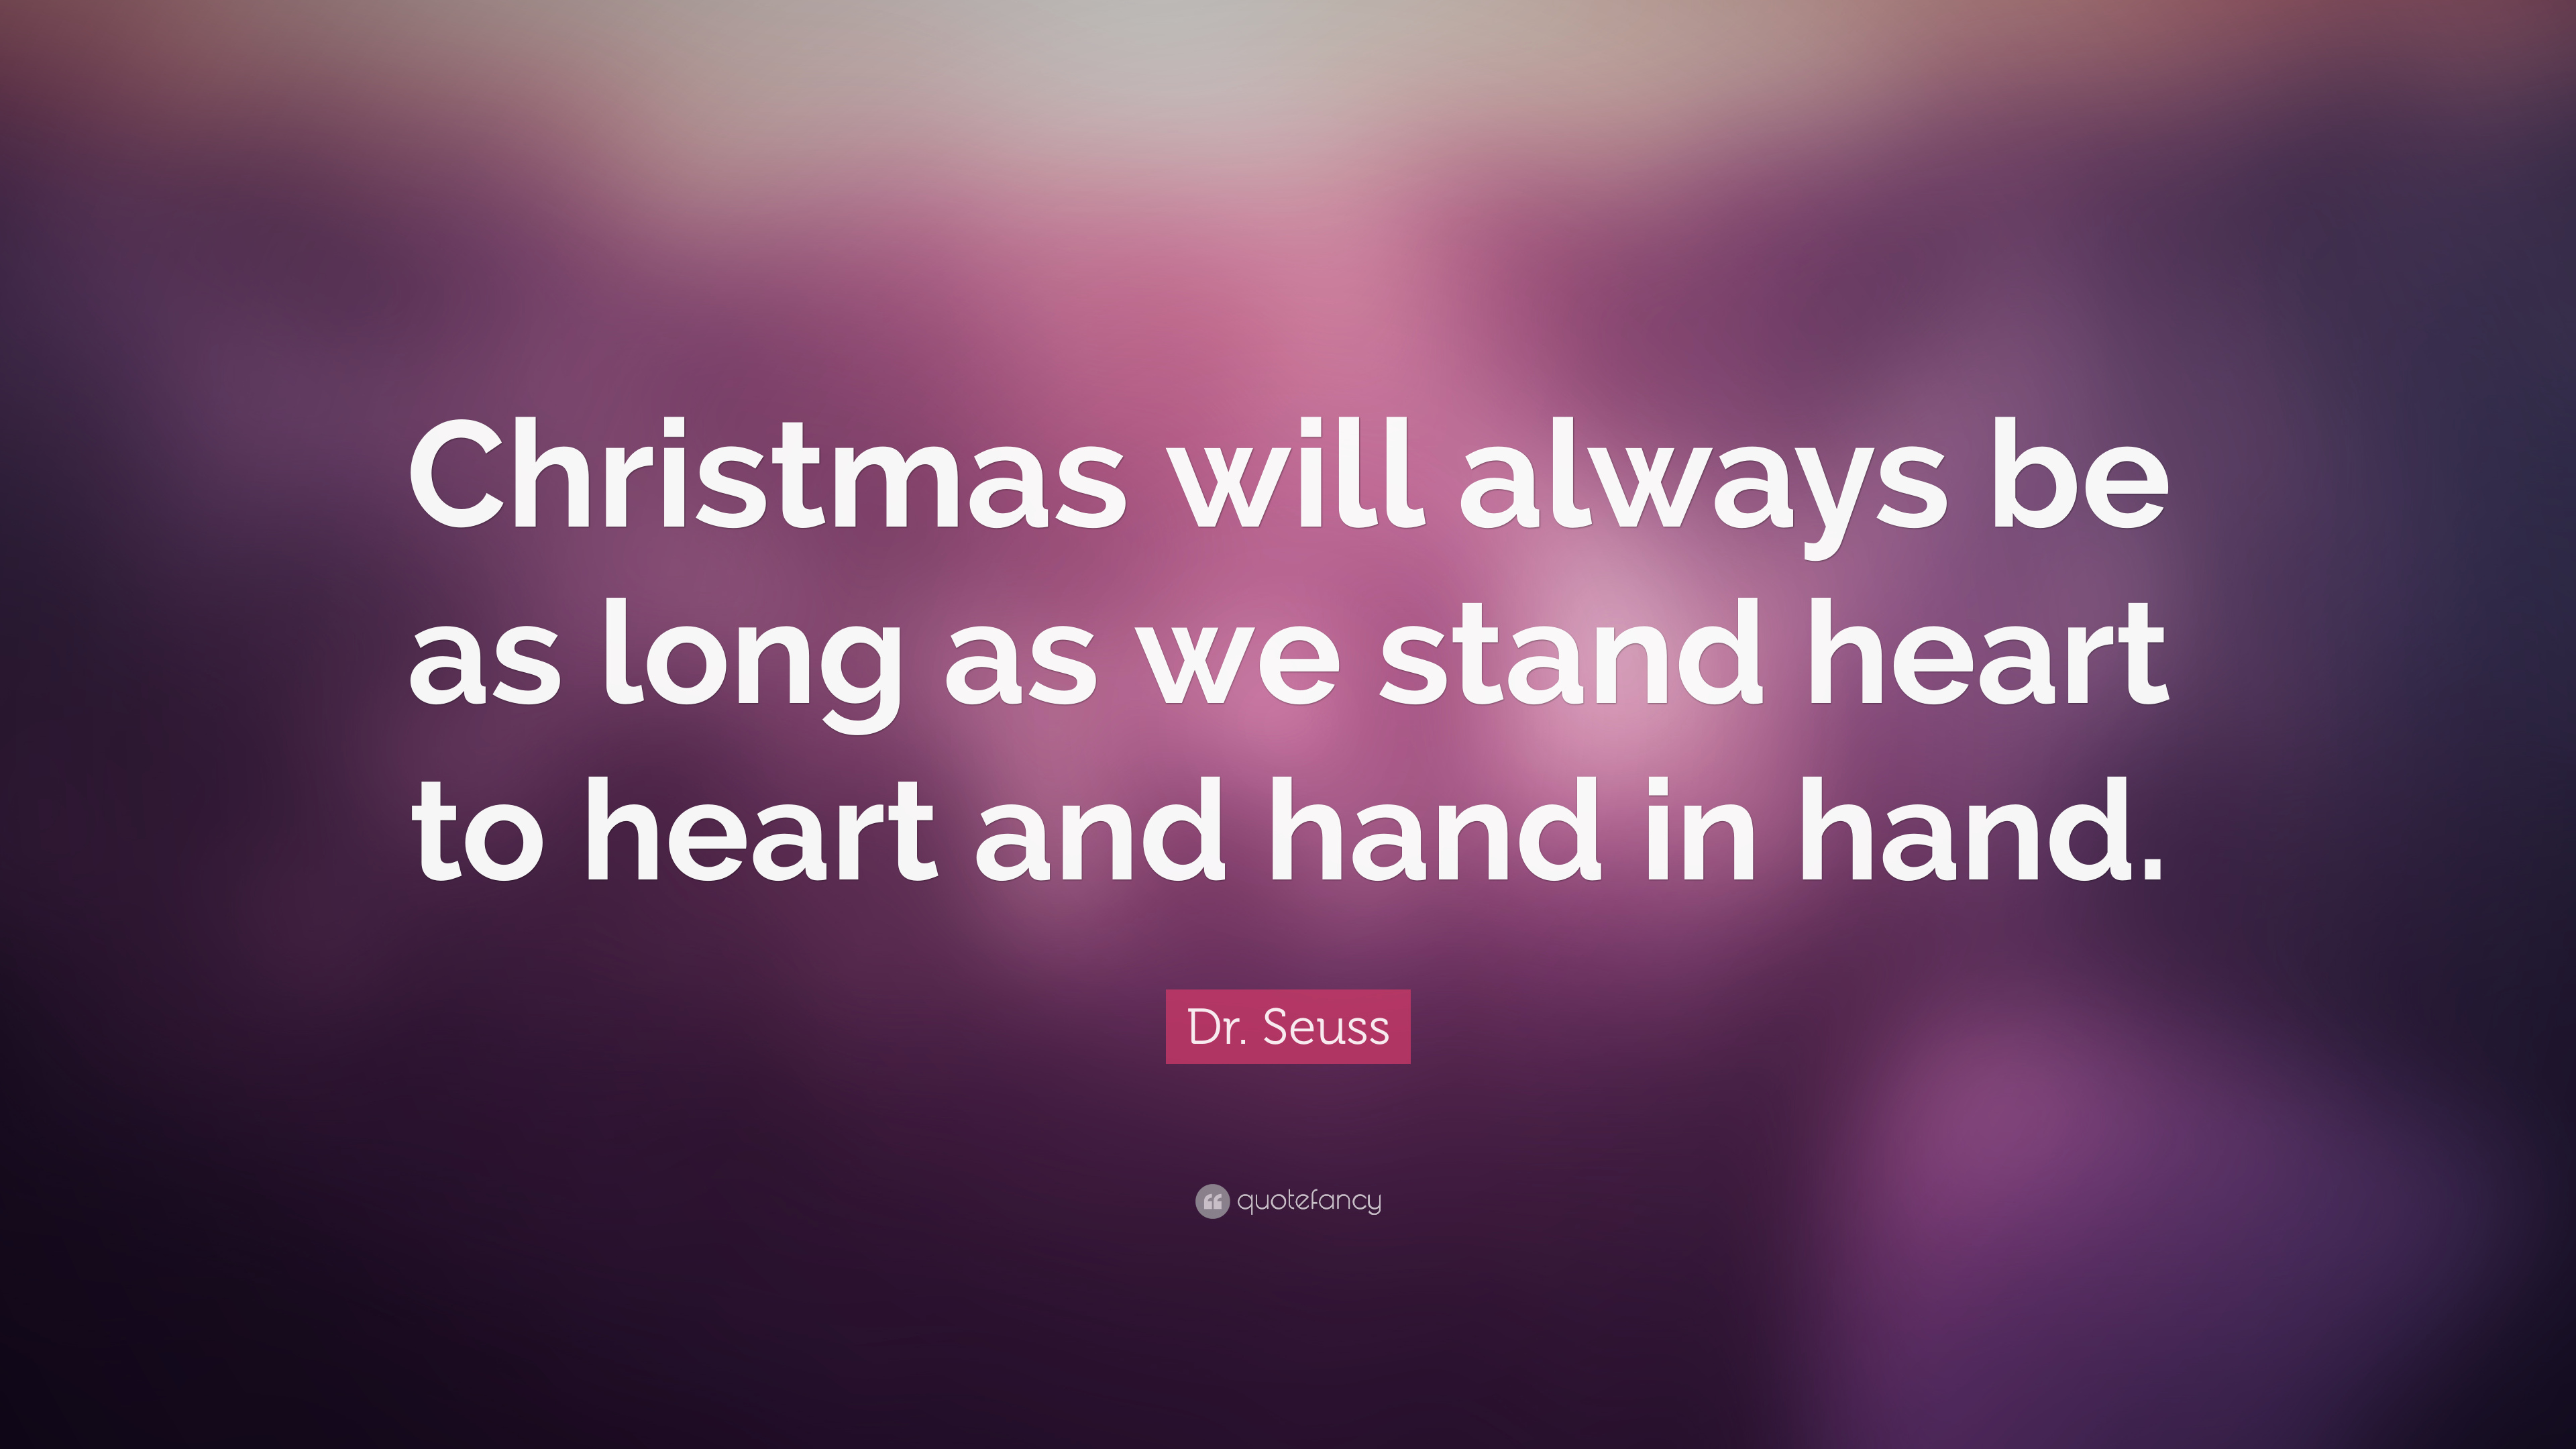 dr seuss quote christmas will always be as long as we stand heart